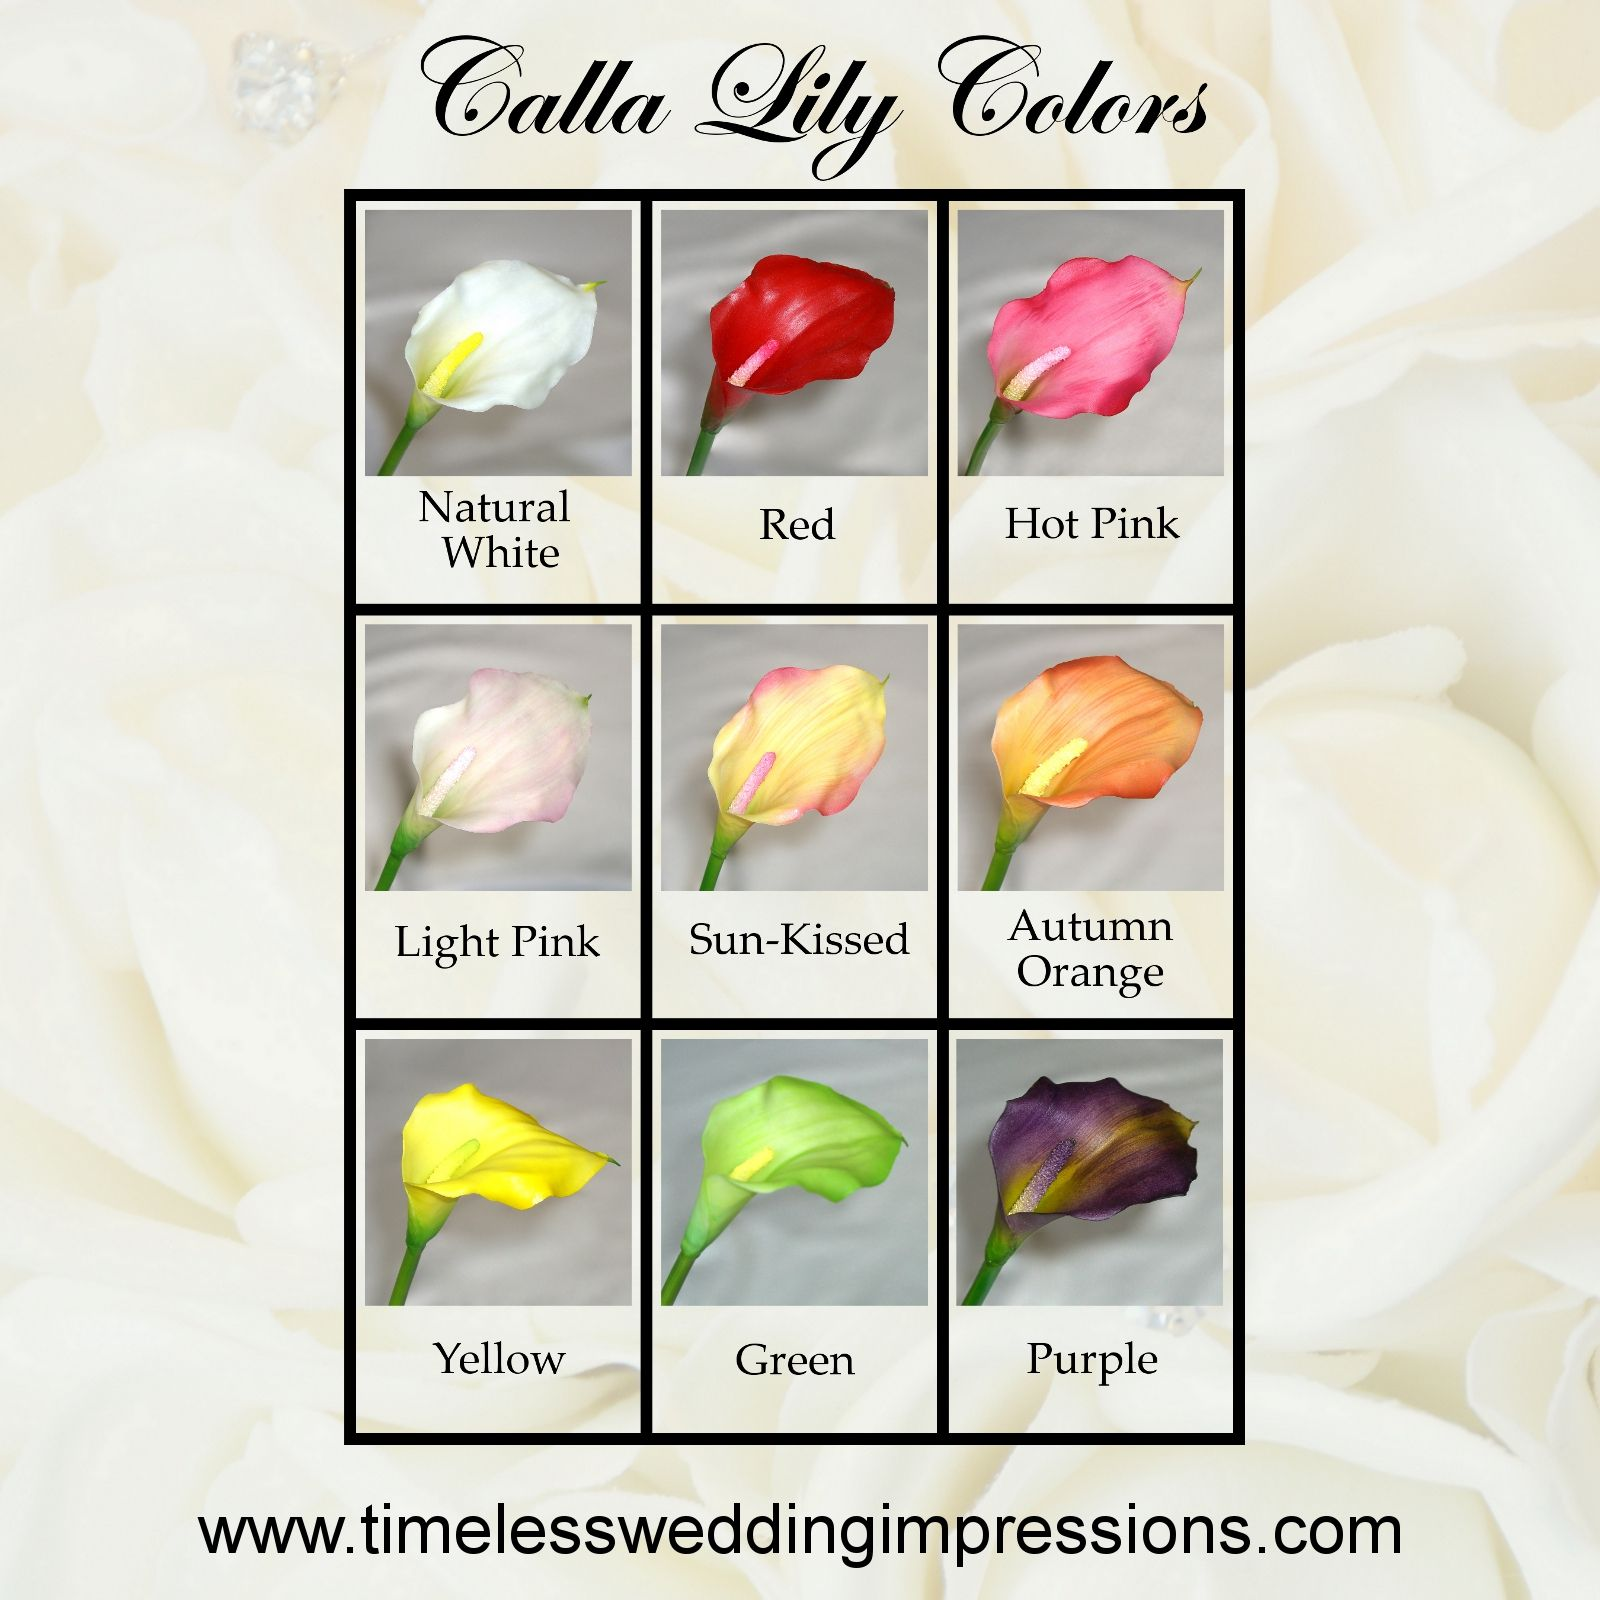 Calla lily summer wedding flowers white red or green my calla lily summer wedding flowers white red or green izmirmasajfo Choice Image